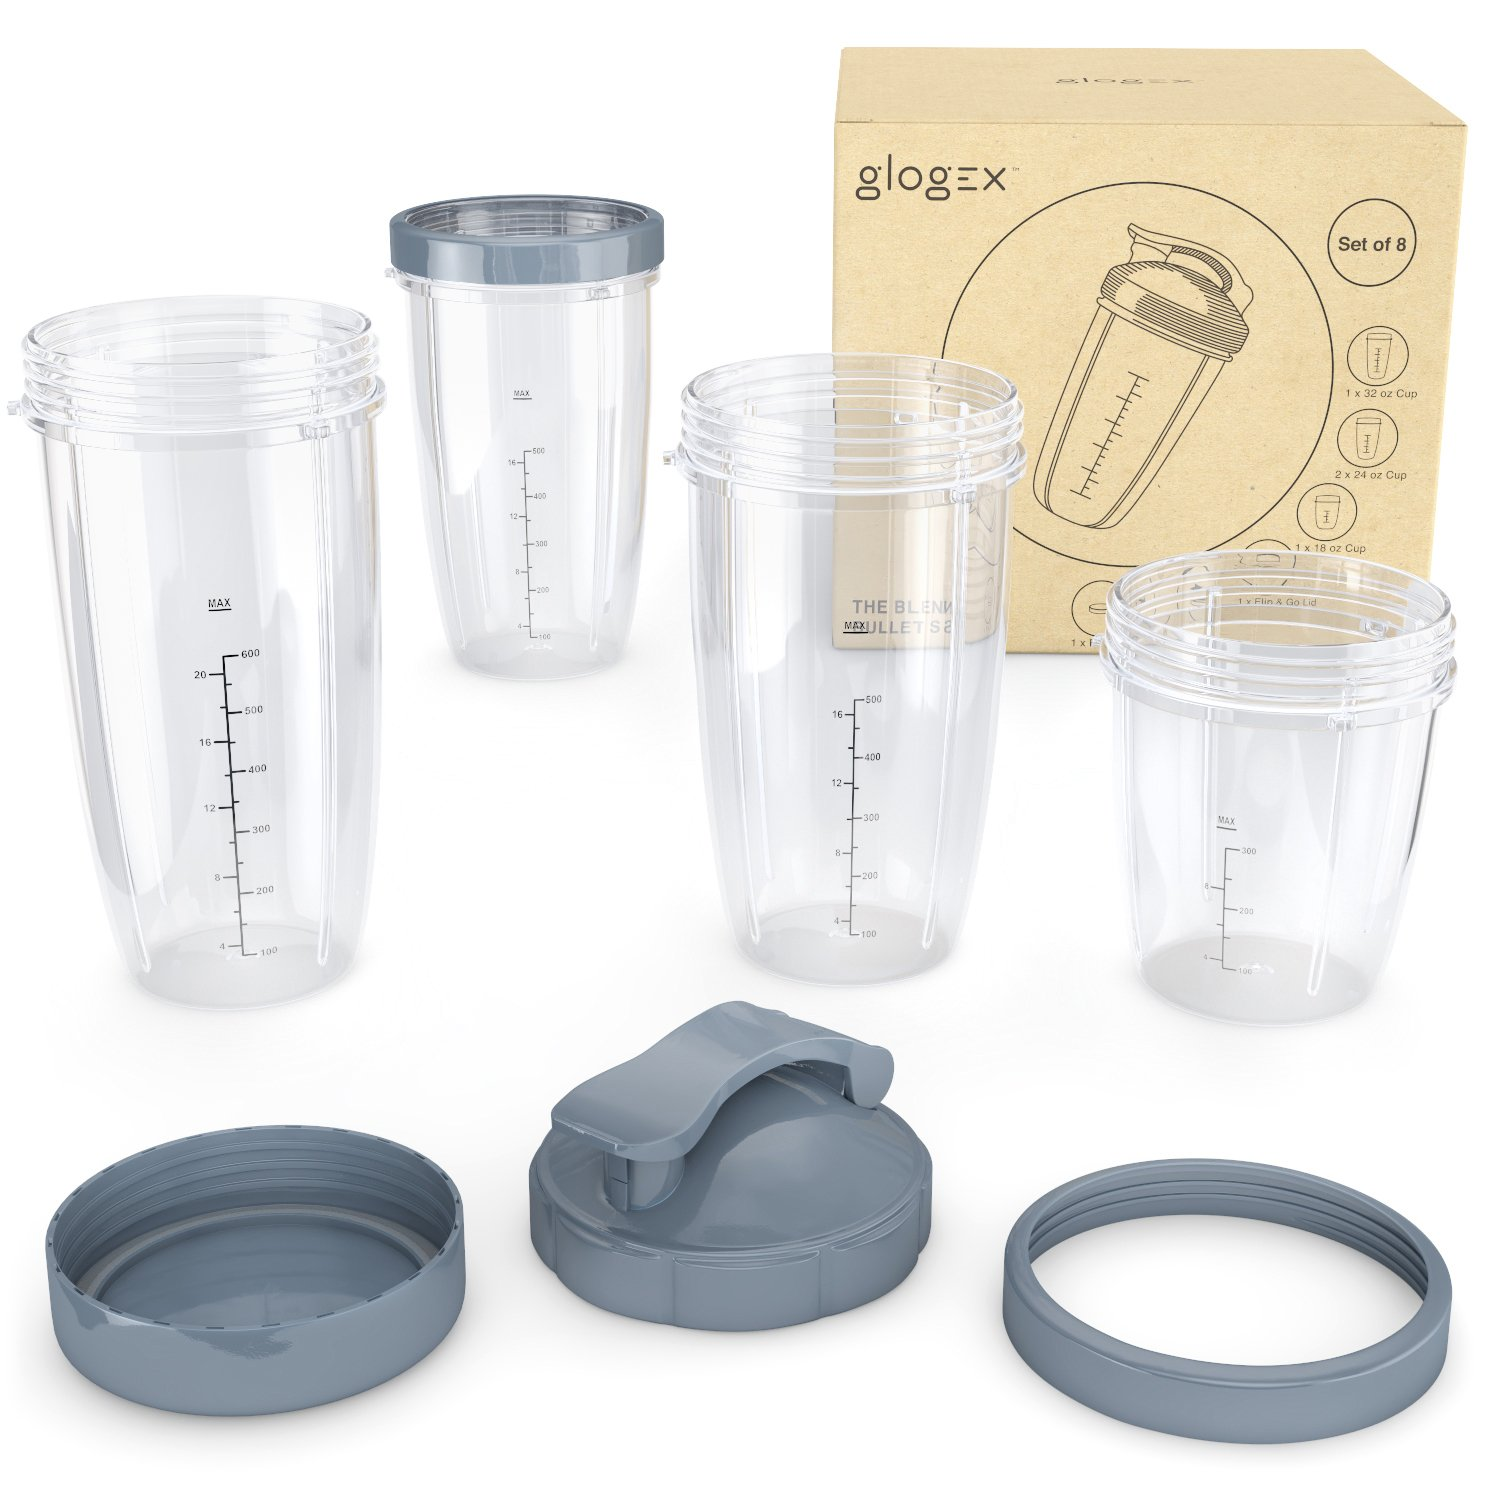 Glogex NutriBullet Replacement Cups